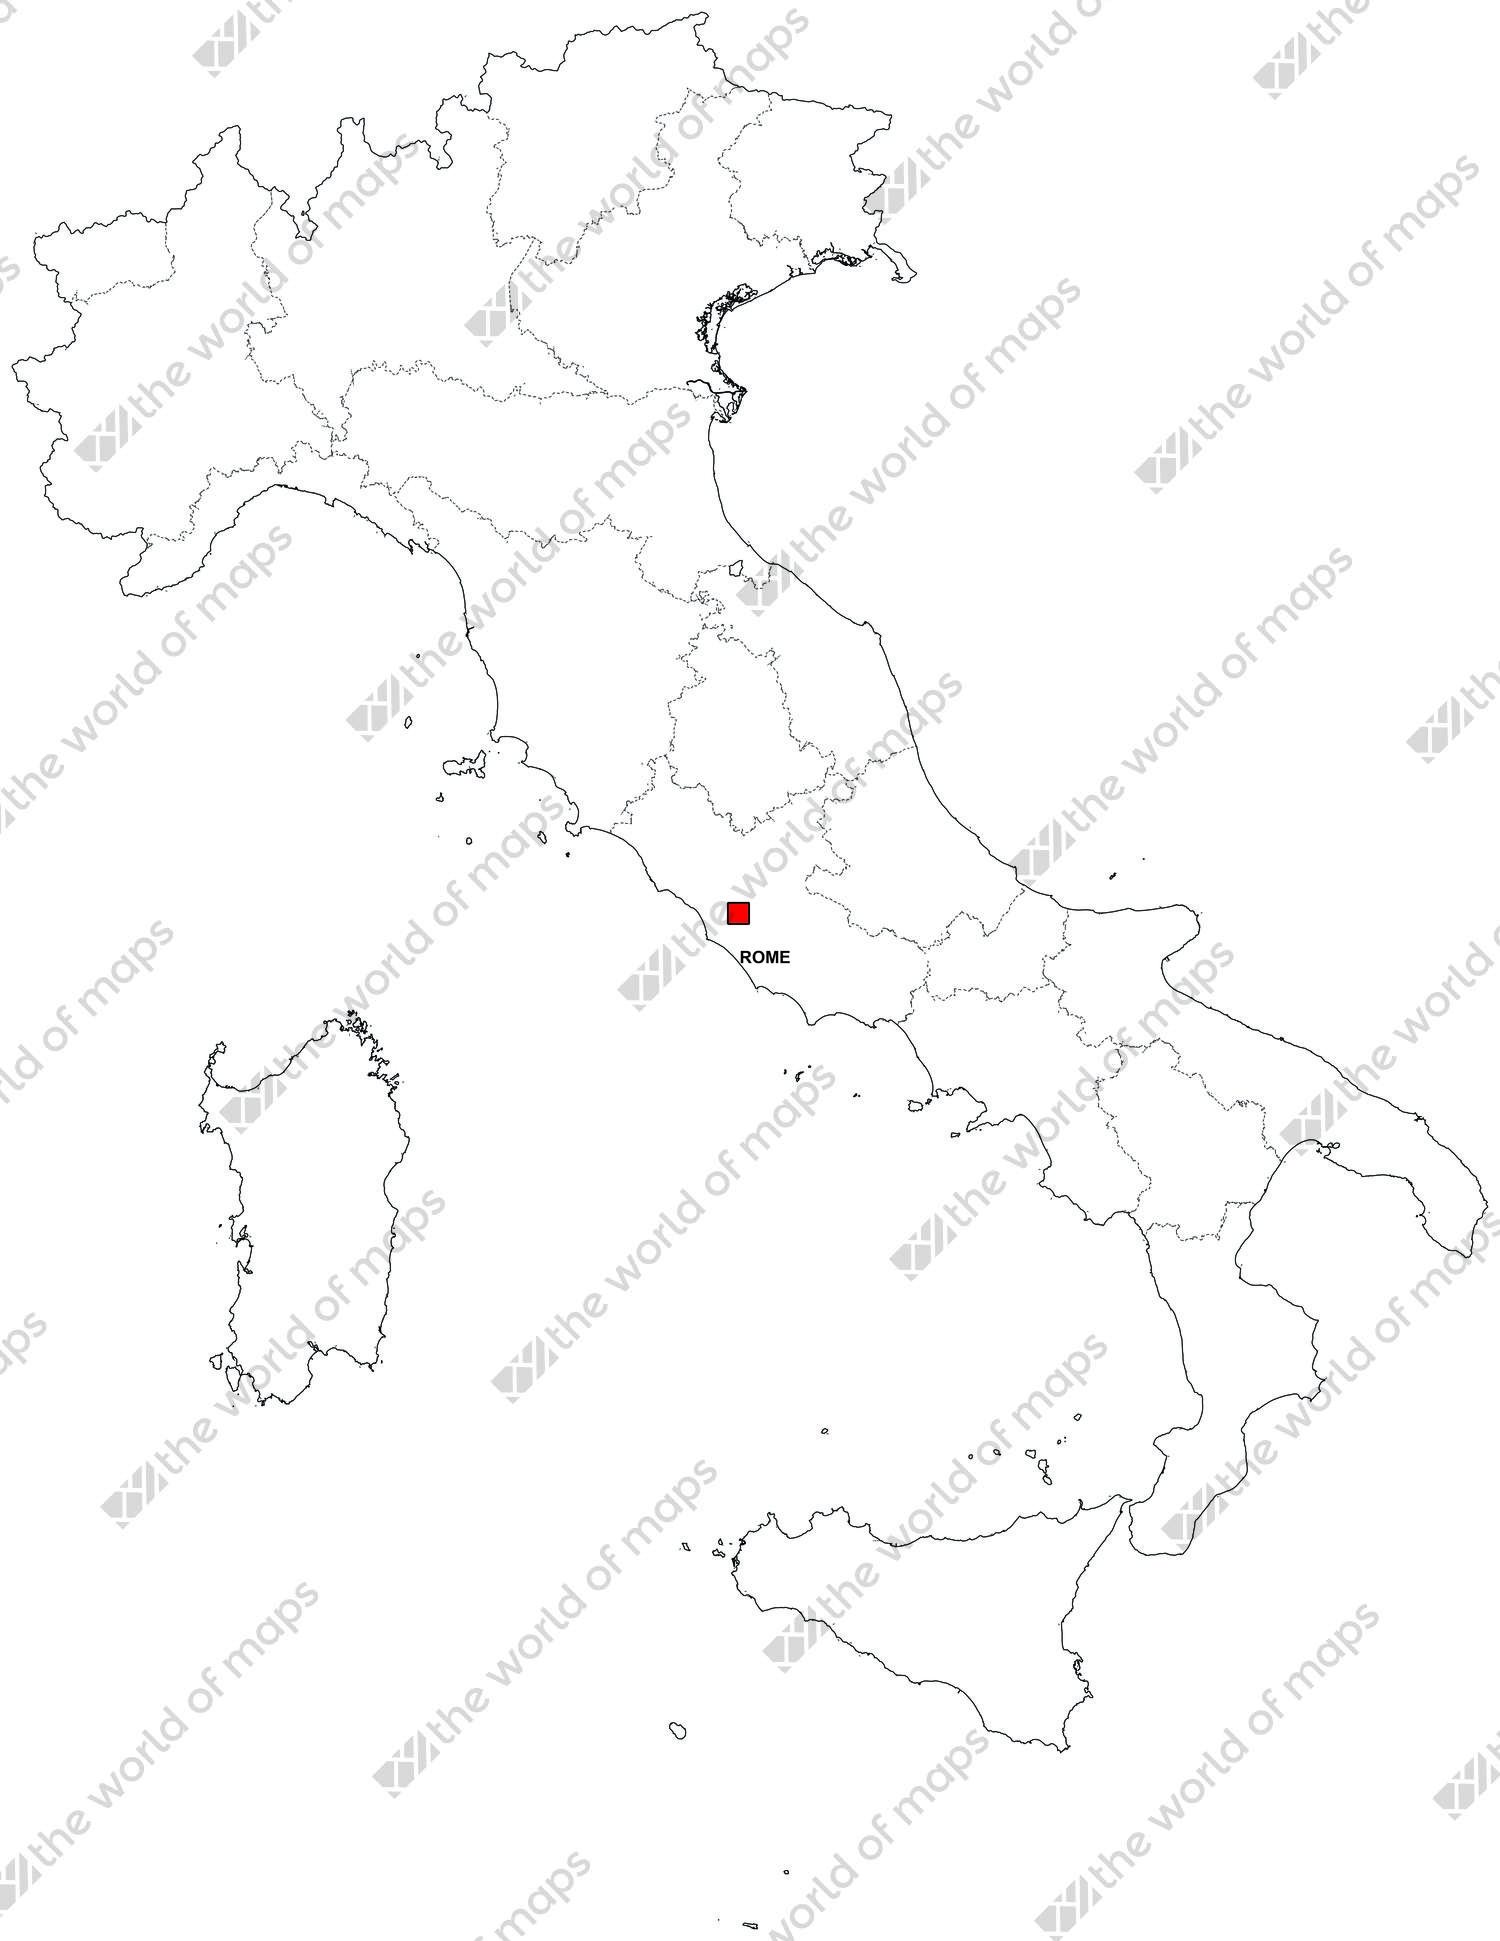 Digital map of Italy (free) | The World of Maps.com